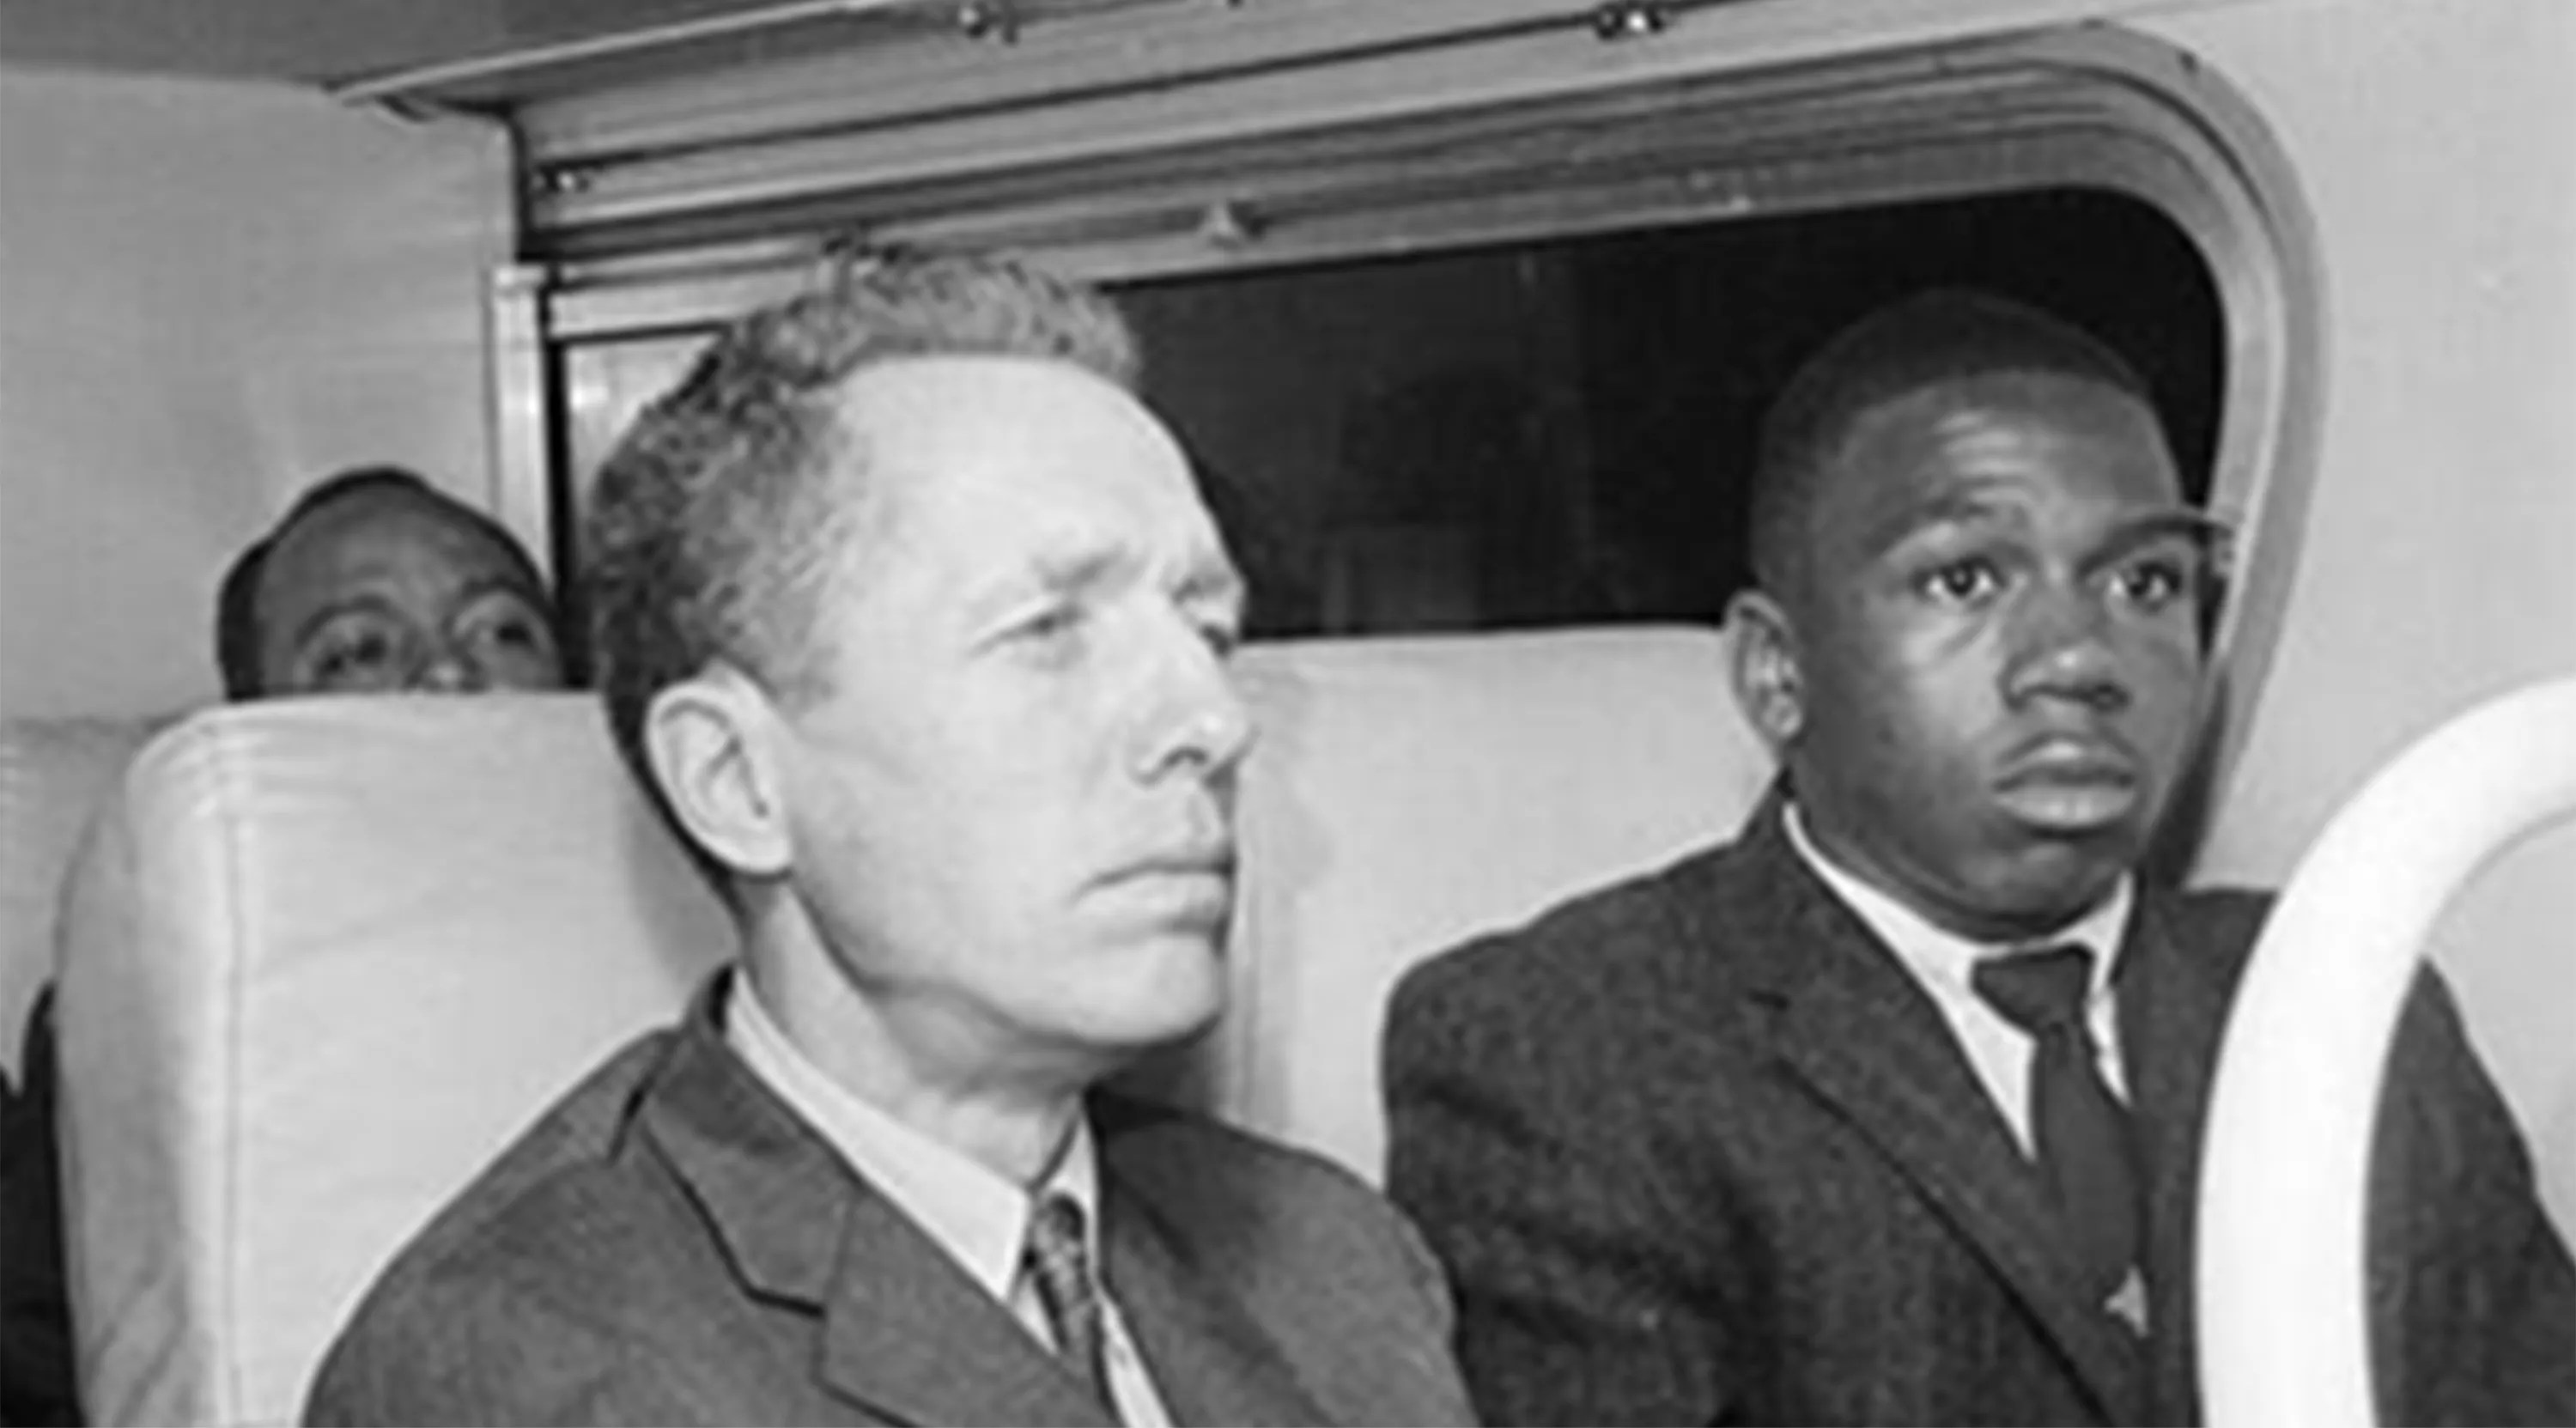 Freedom Riders Charles Person, right, and James Peck on the bus in 1961, with James Farmer, the head of CORE, in the background.